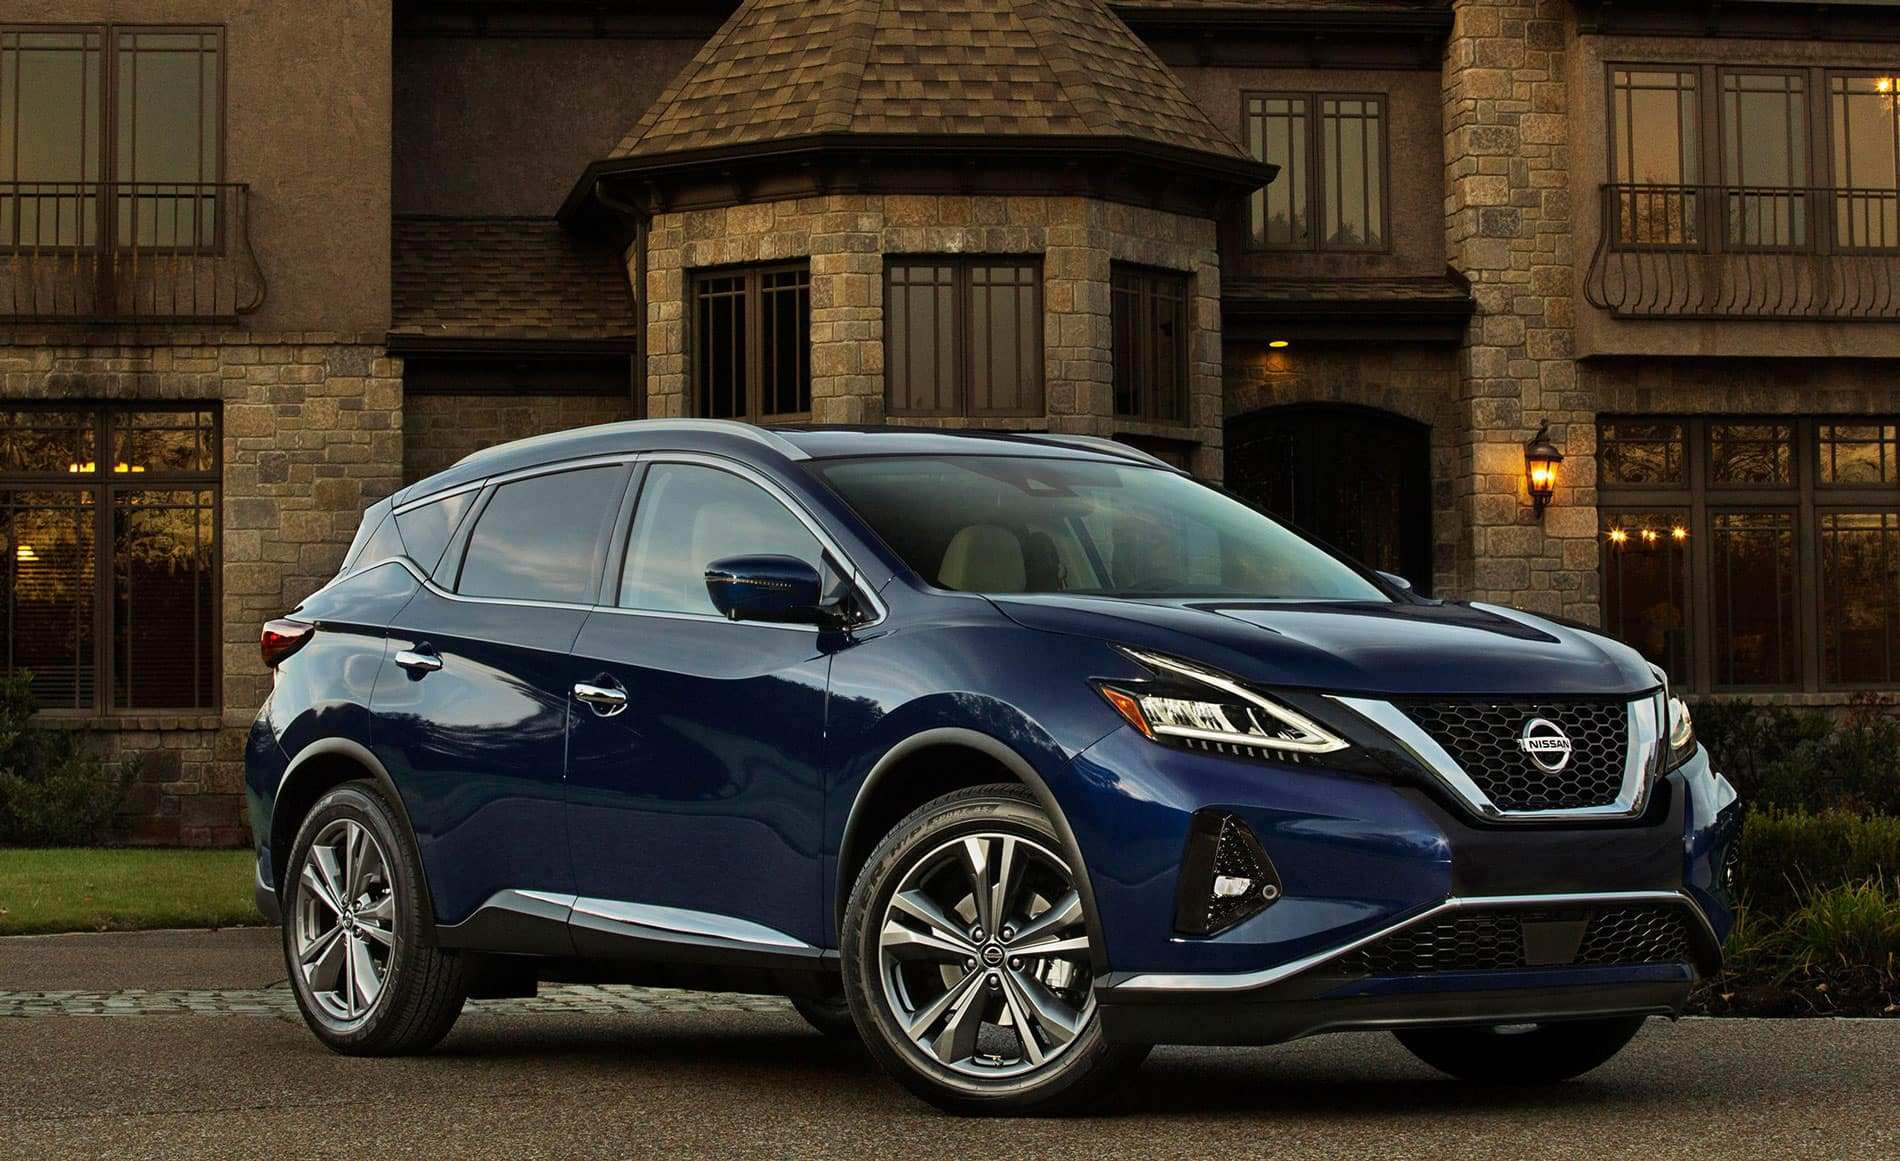 60 The Best Nissan Murano 2020 Model New Concept